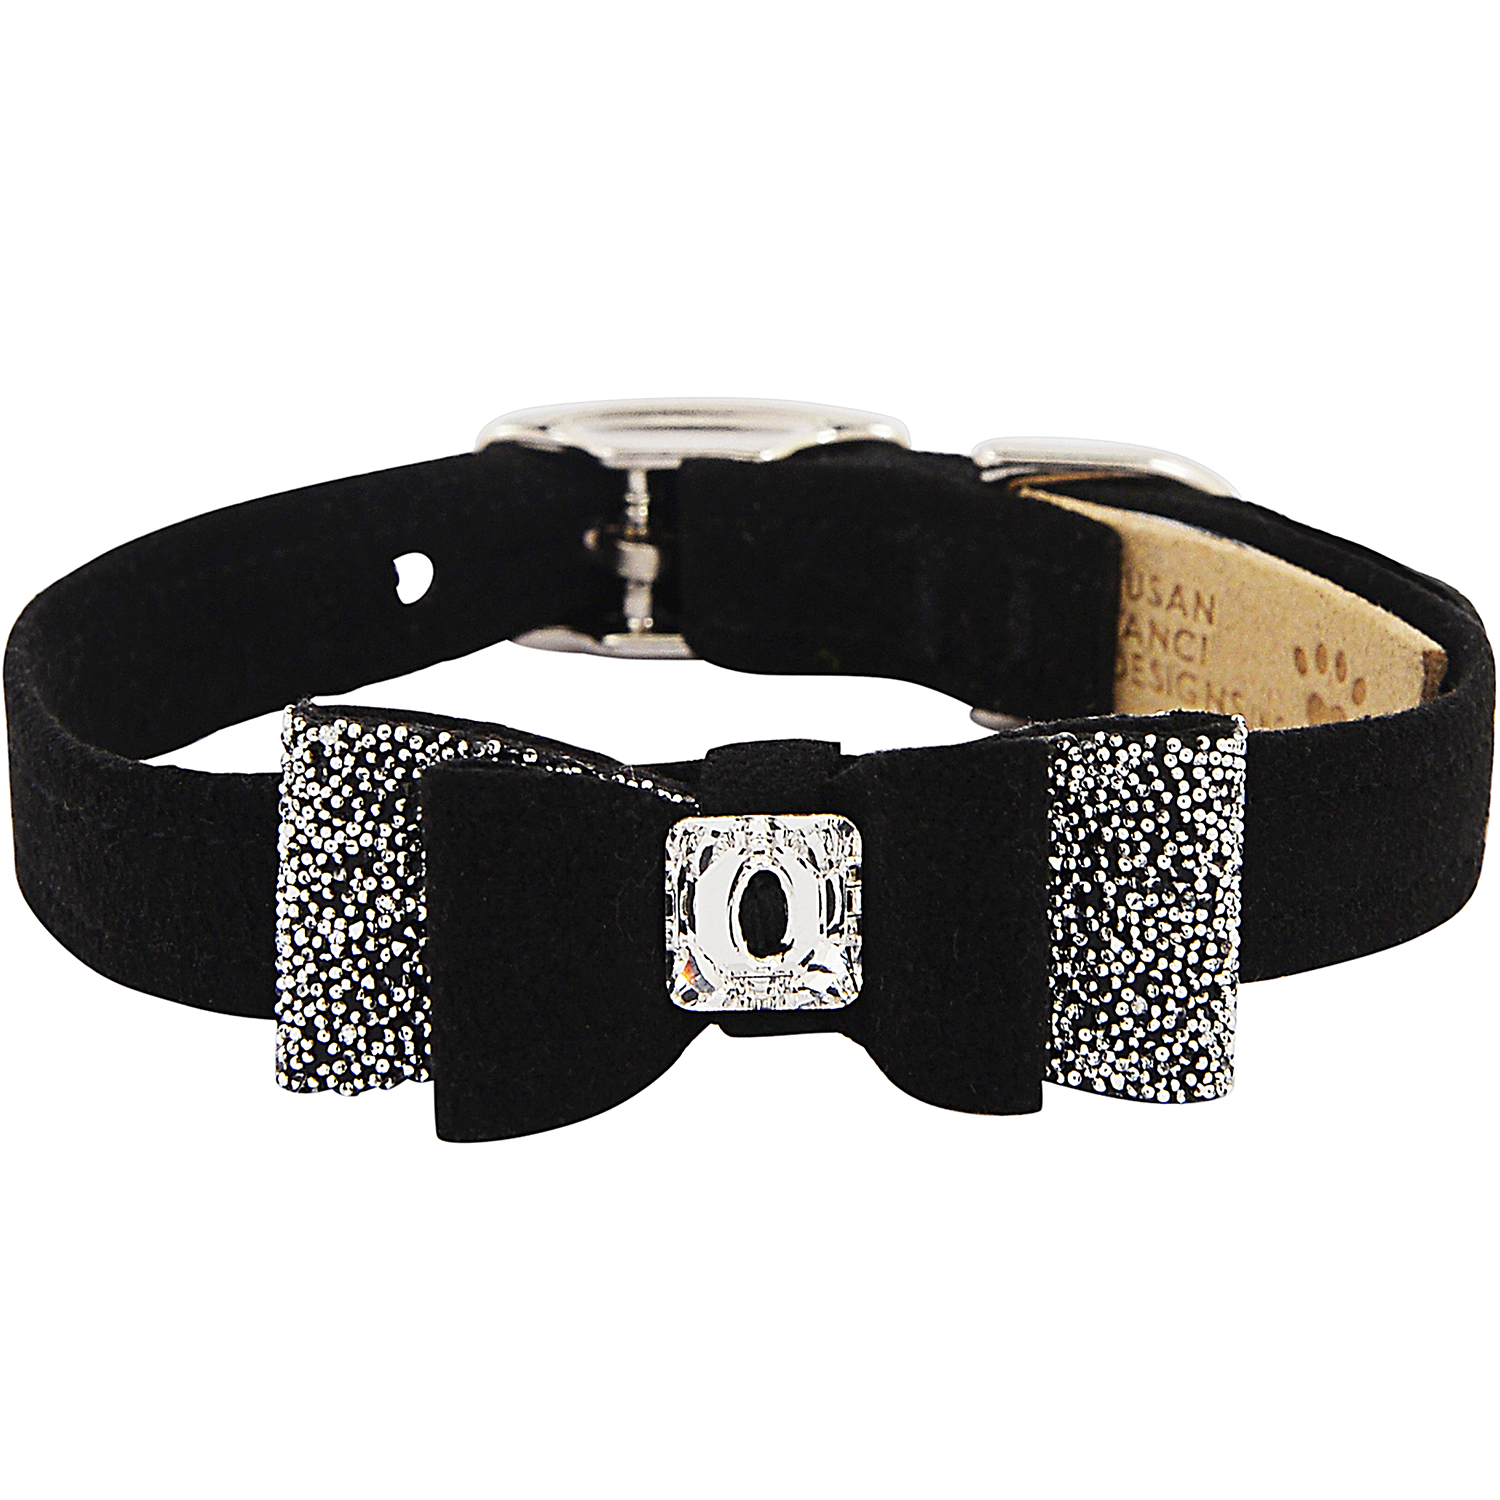 Crystal Stellar Pet Collar: Black